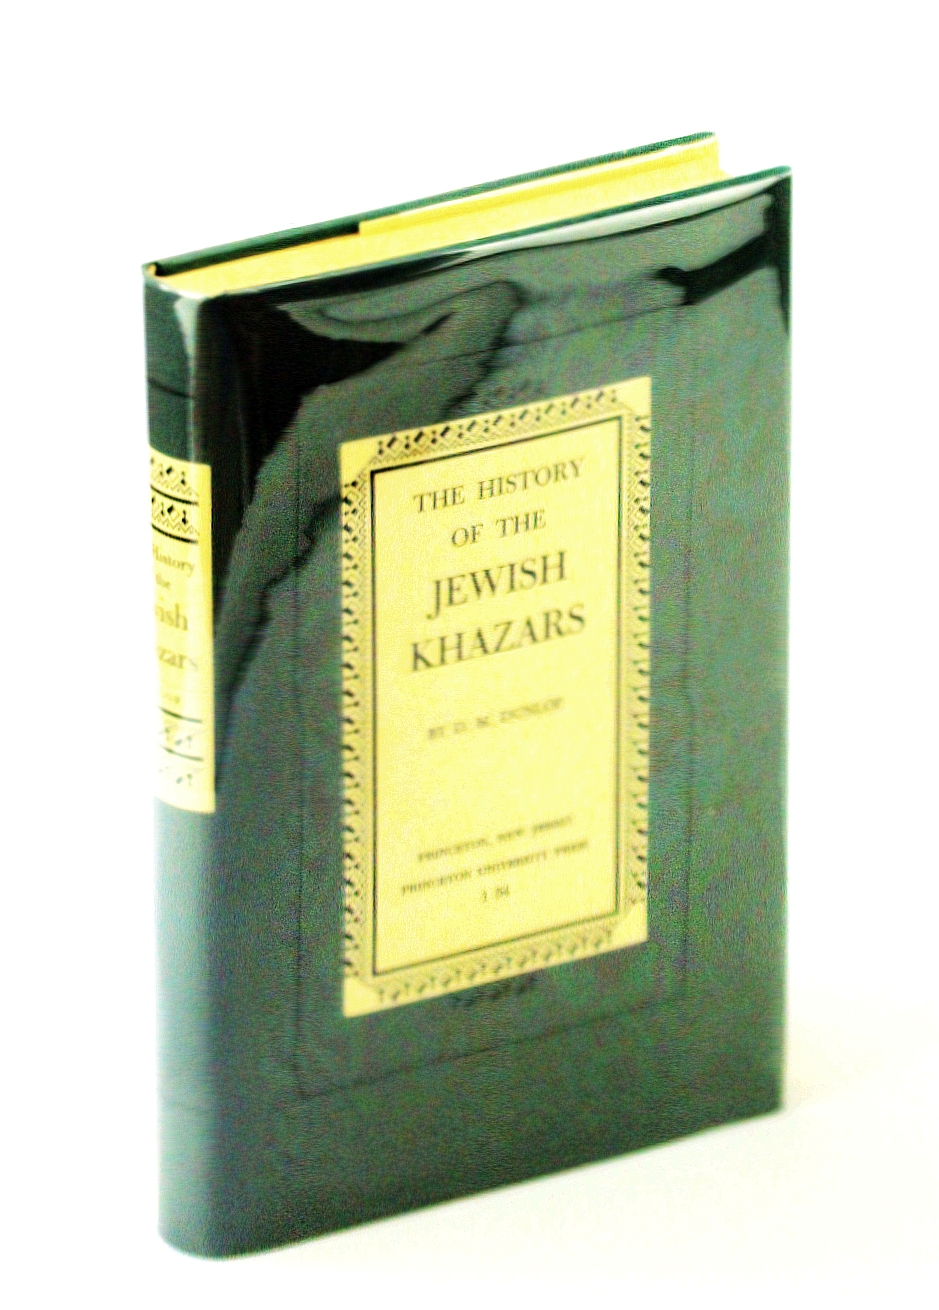 Image for The History of the Jewish Khazars - Princeton Oriental Studies Volume 16